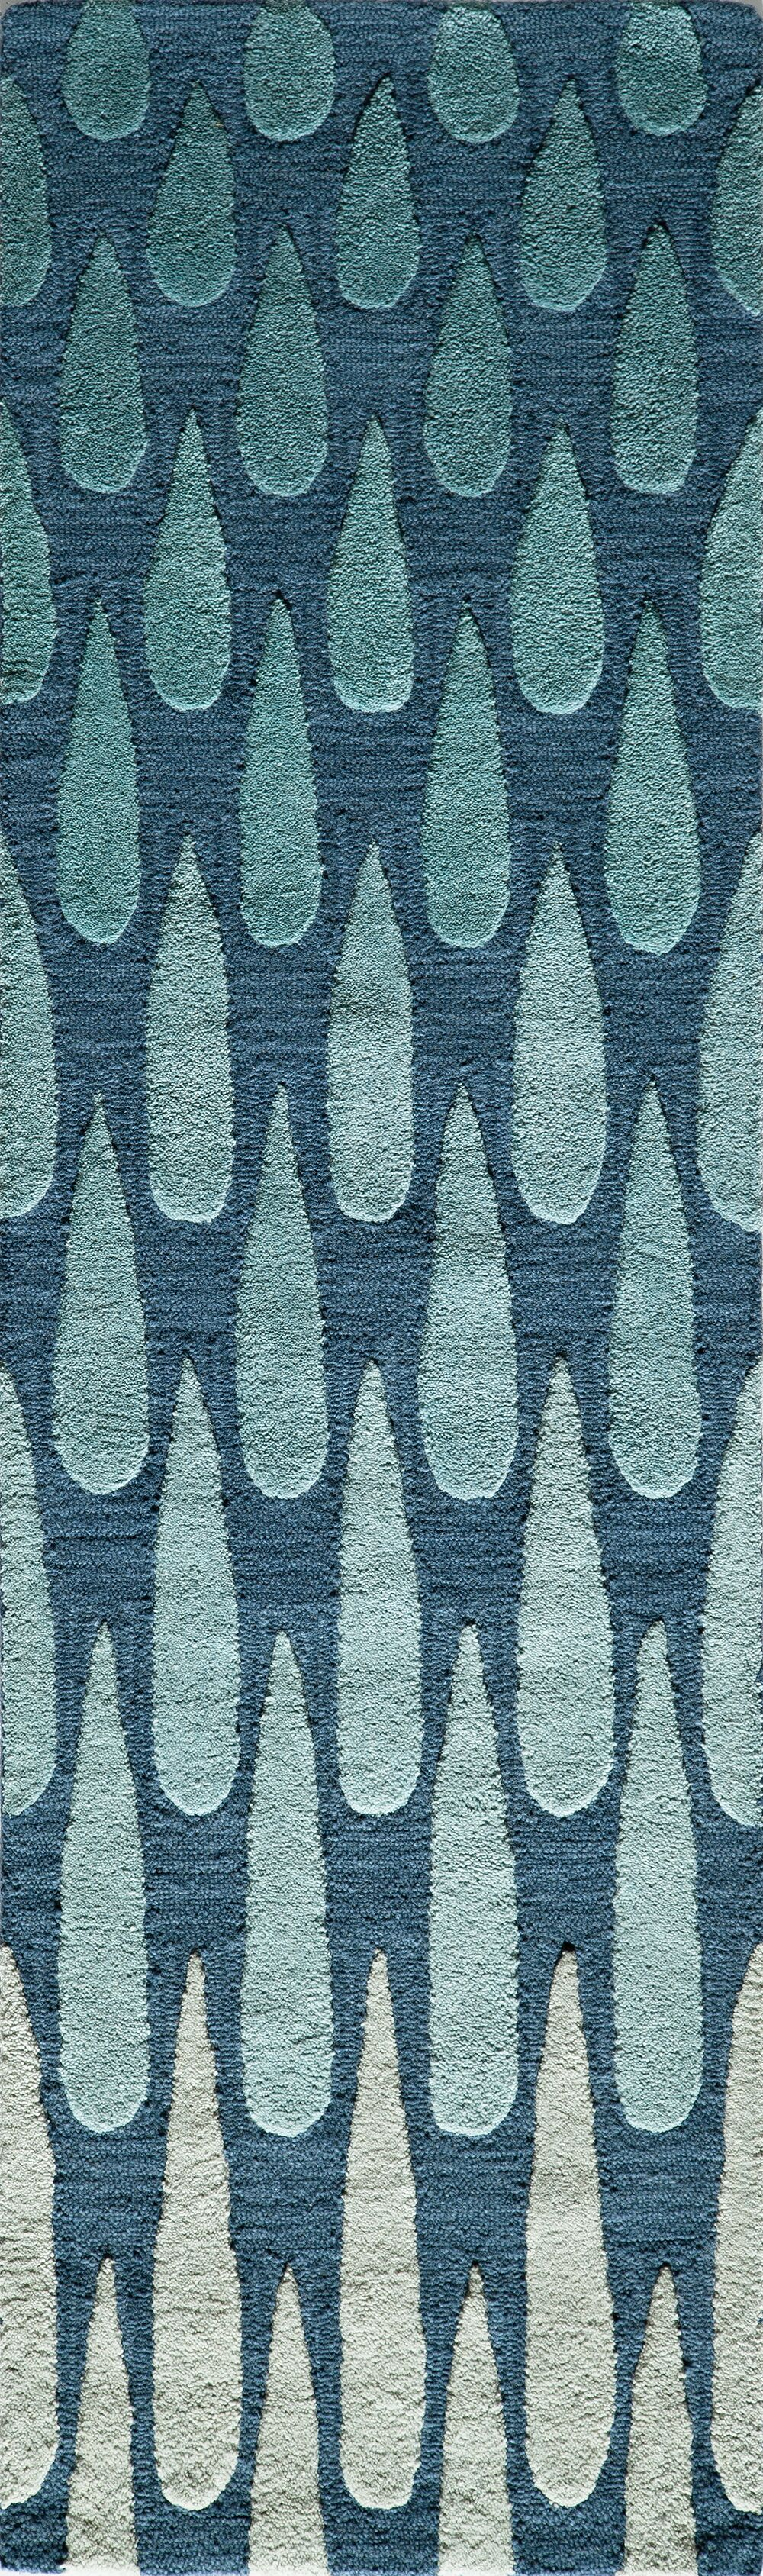 Hagood Hand-Tufted Blue Area Rug Rug Size: Runner 2'3